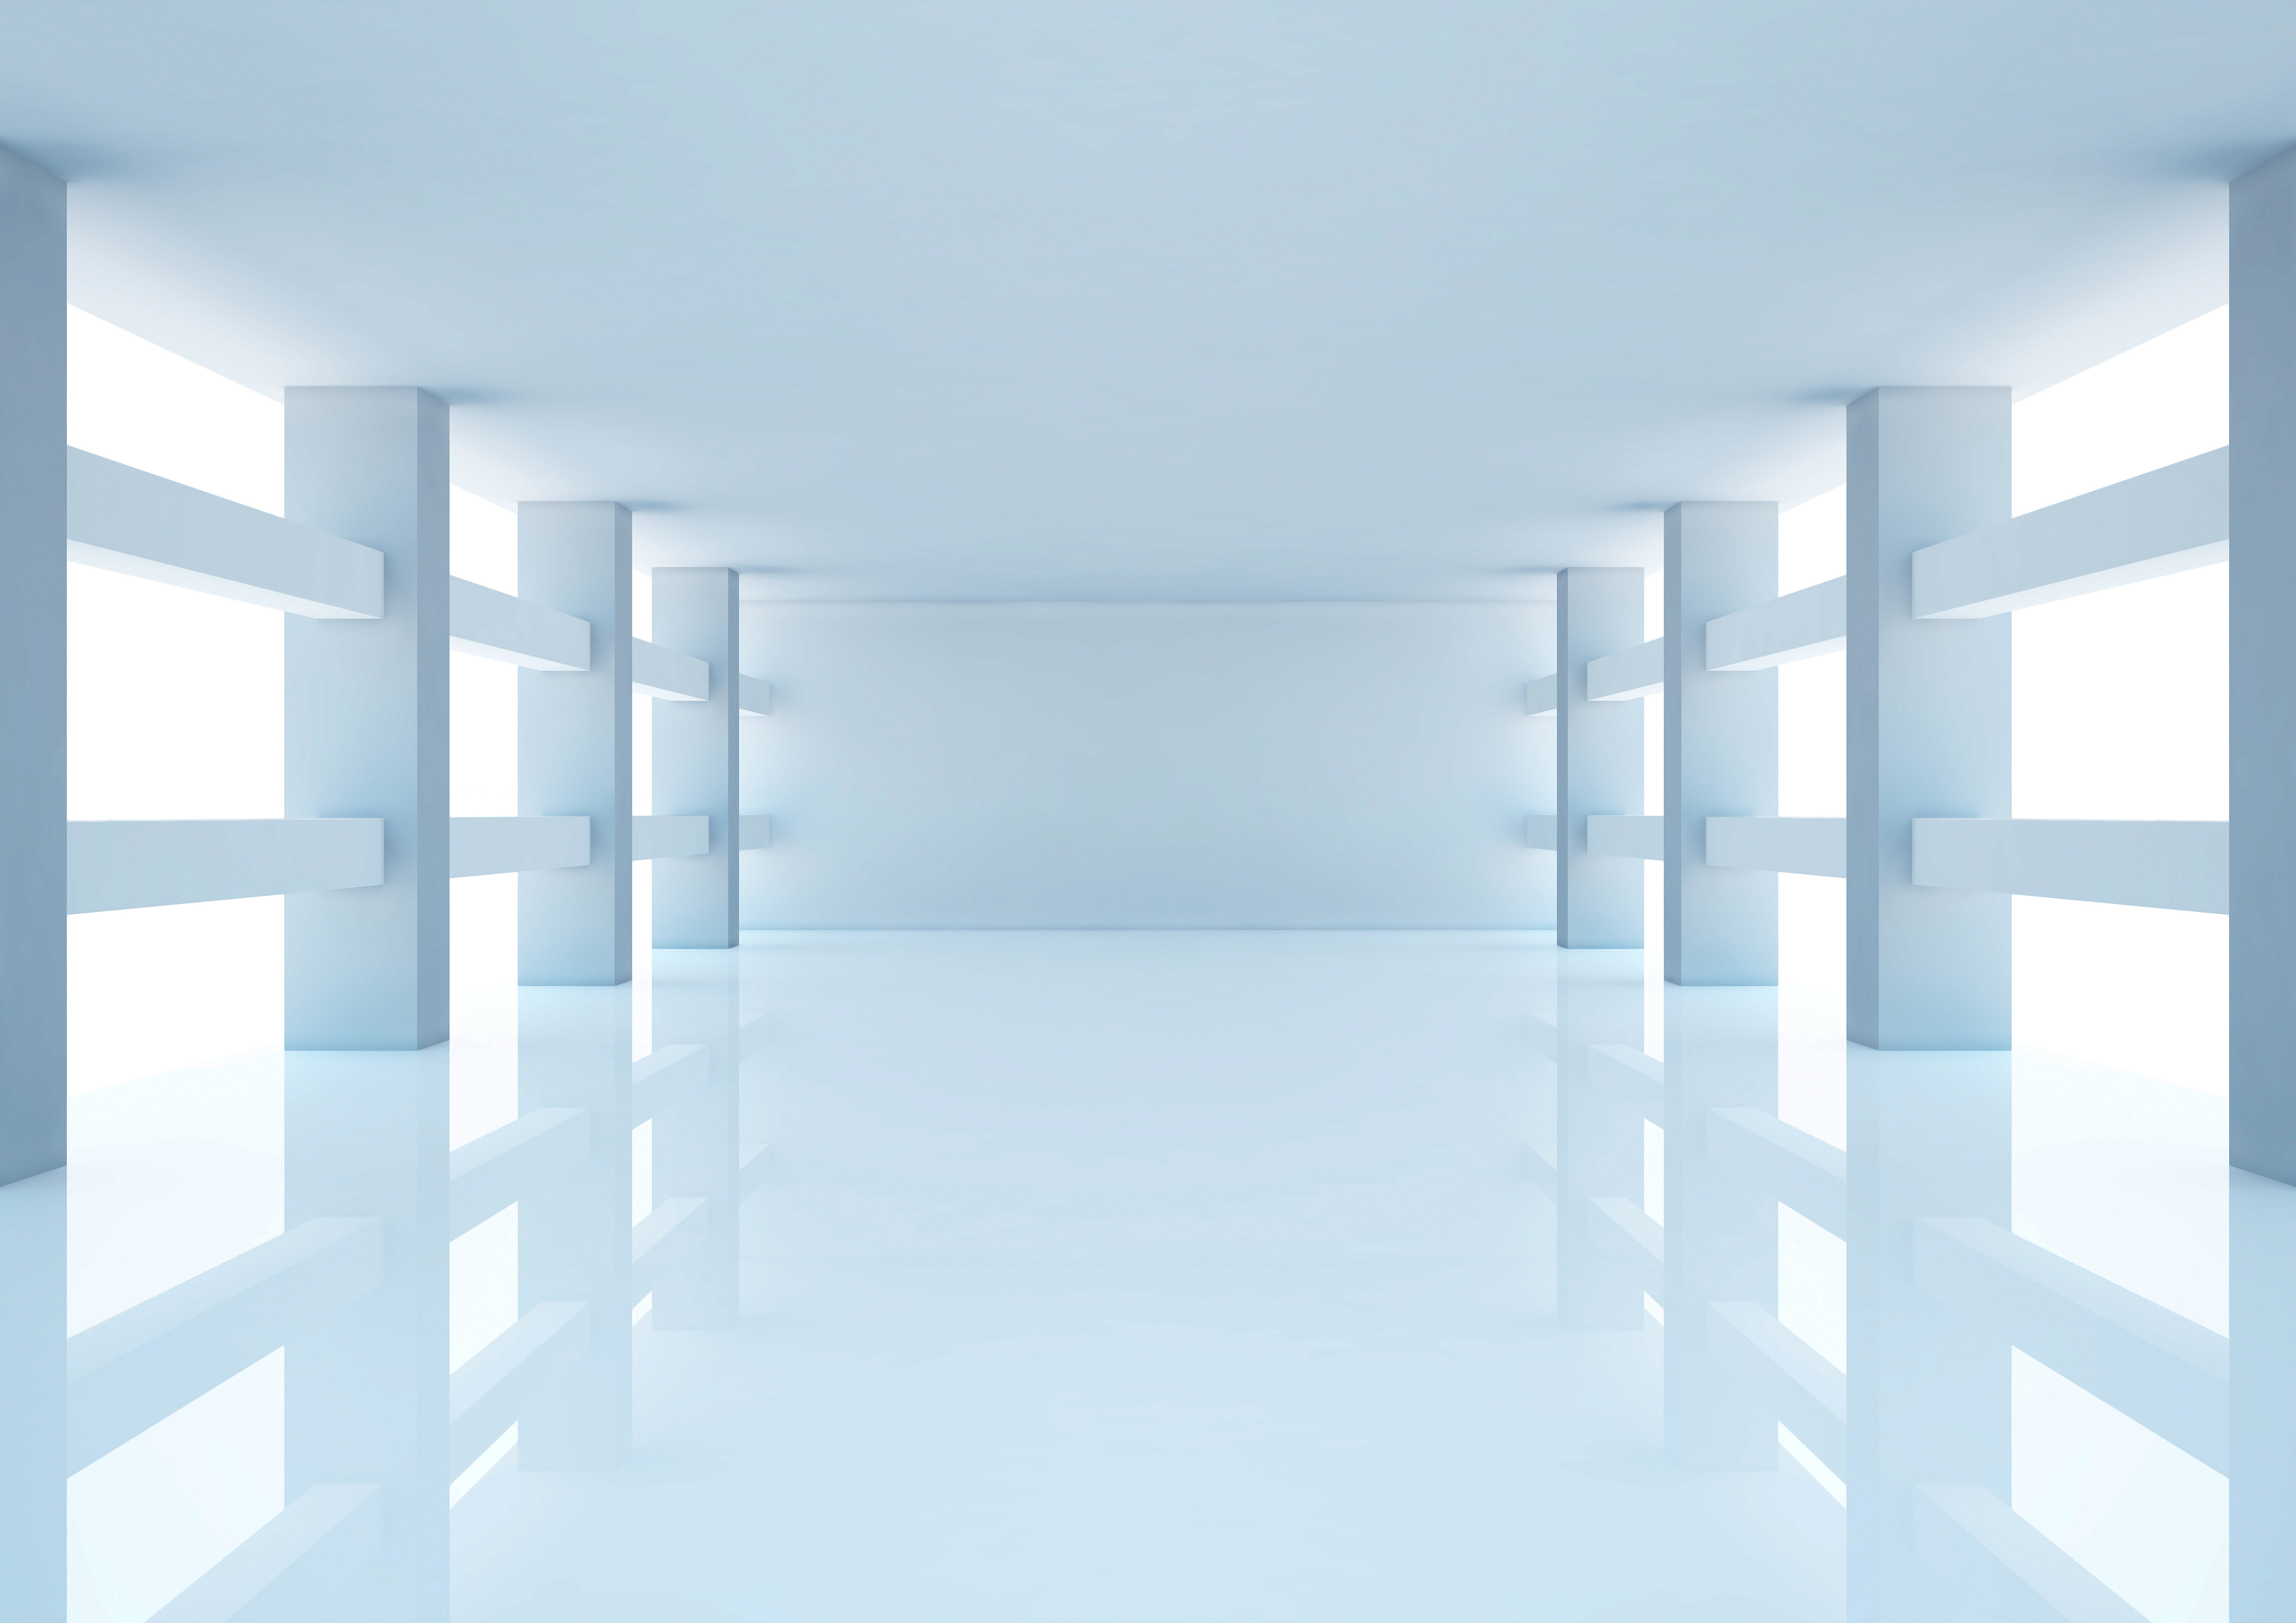 ... Empty White Room With Columns And Windows 3d Illus By Winampers Pro